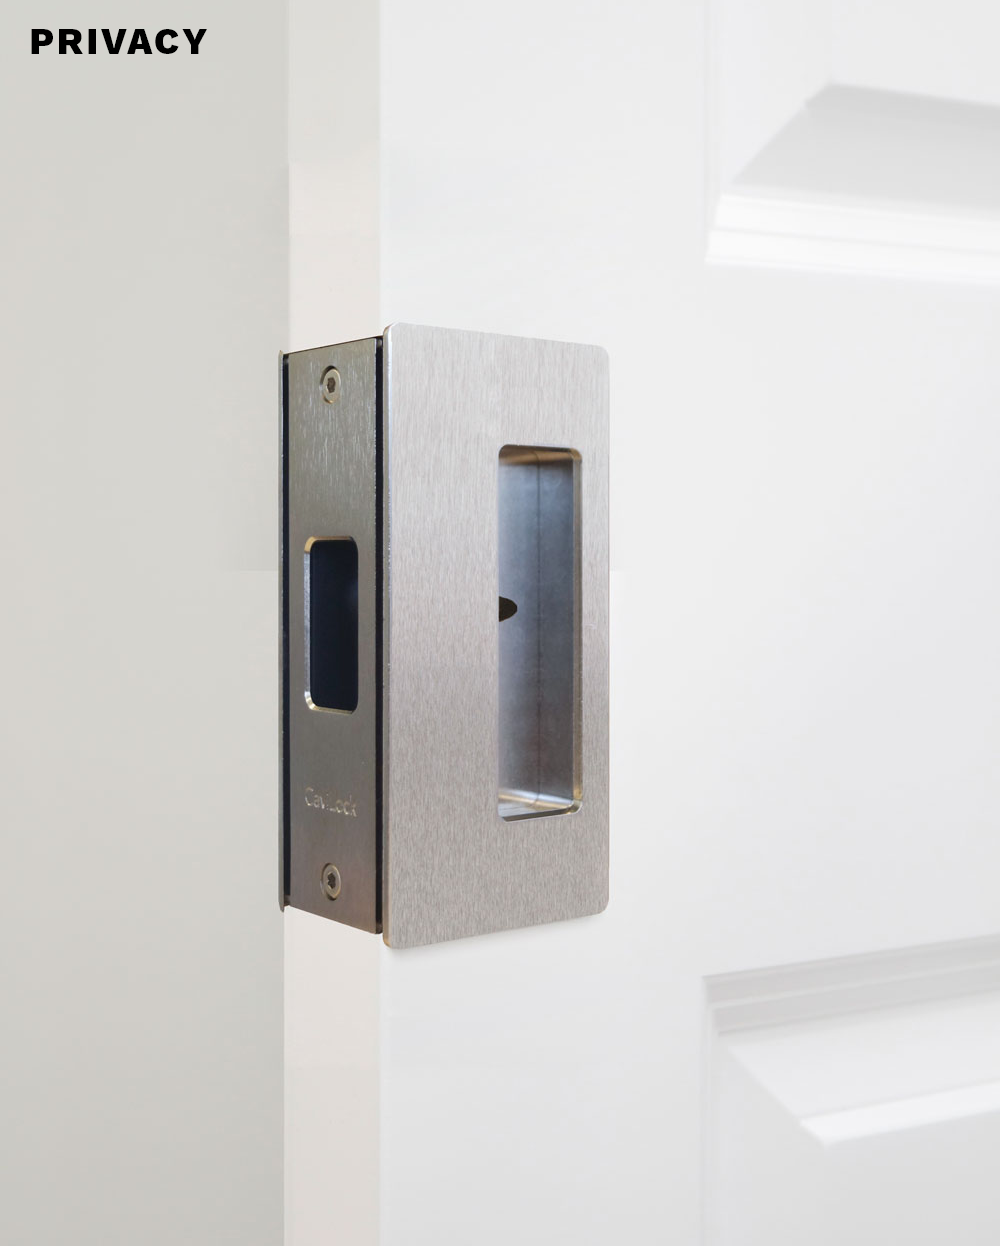 CL200-magnetic-pRIVACY